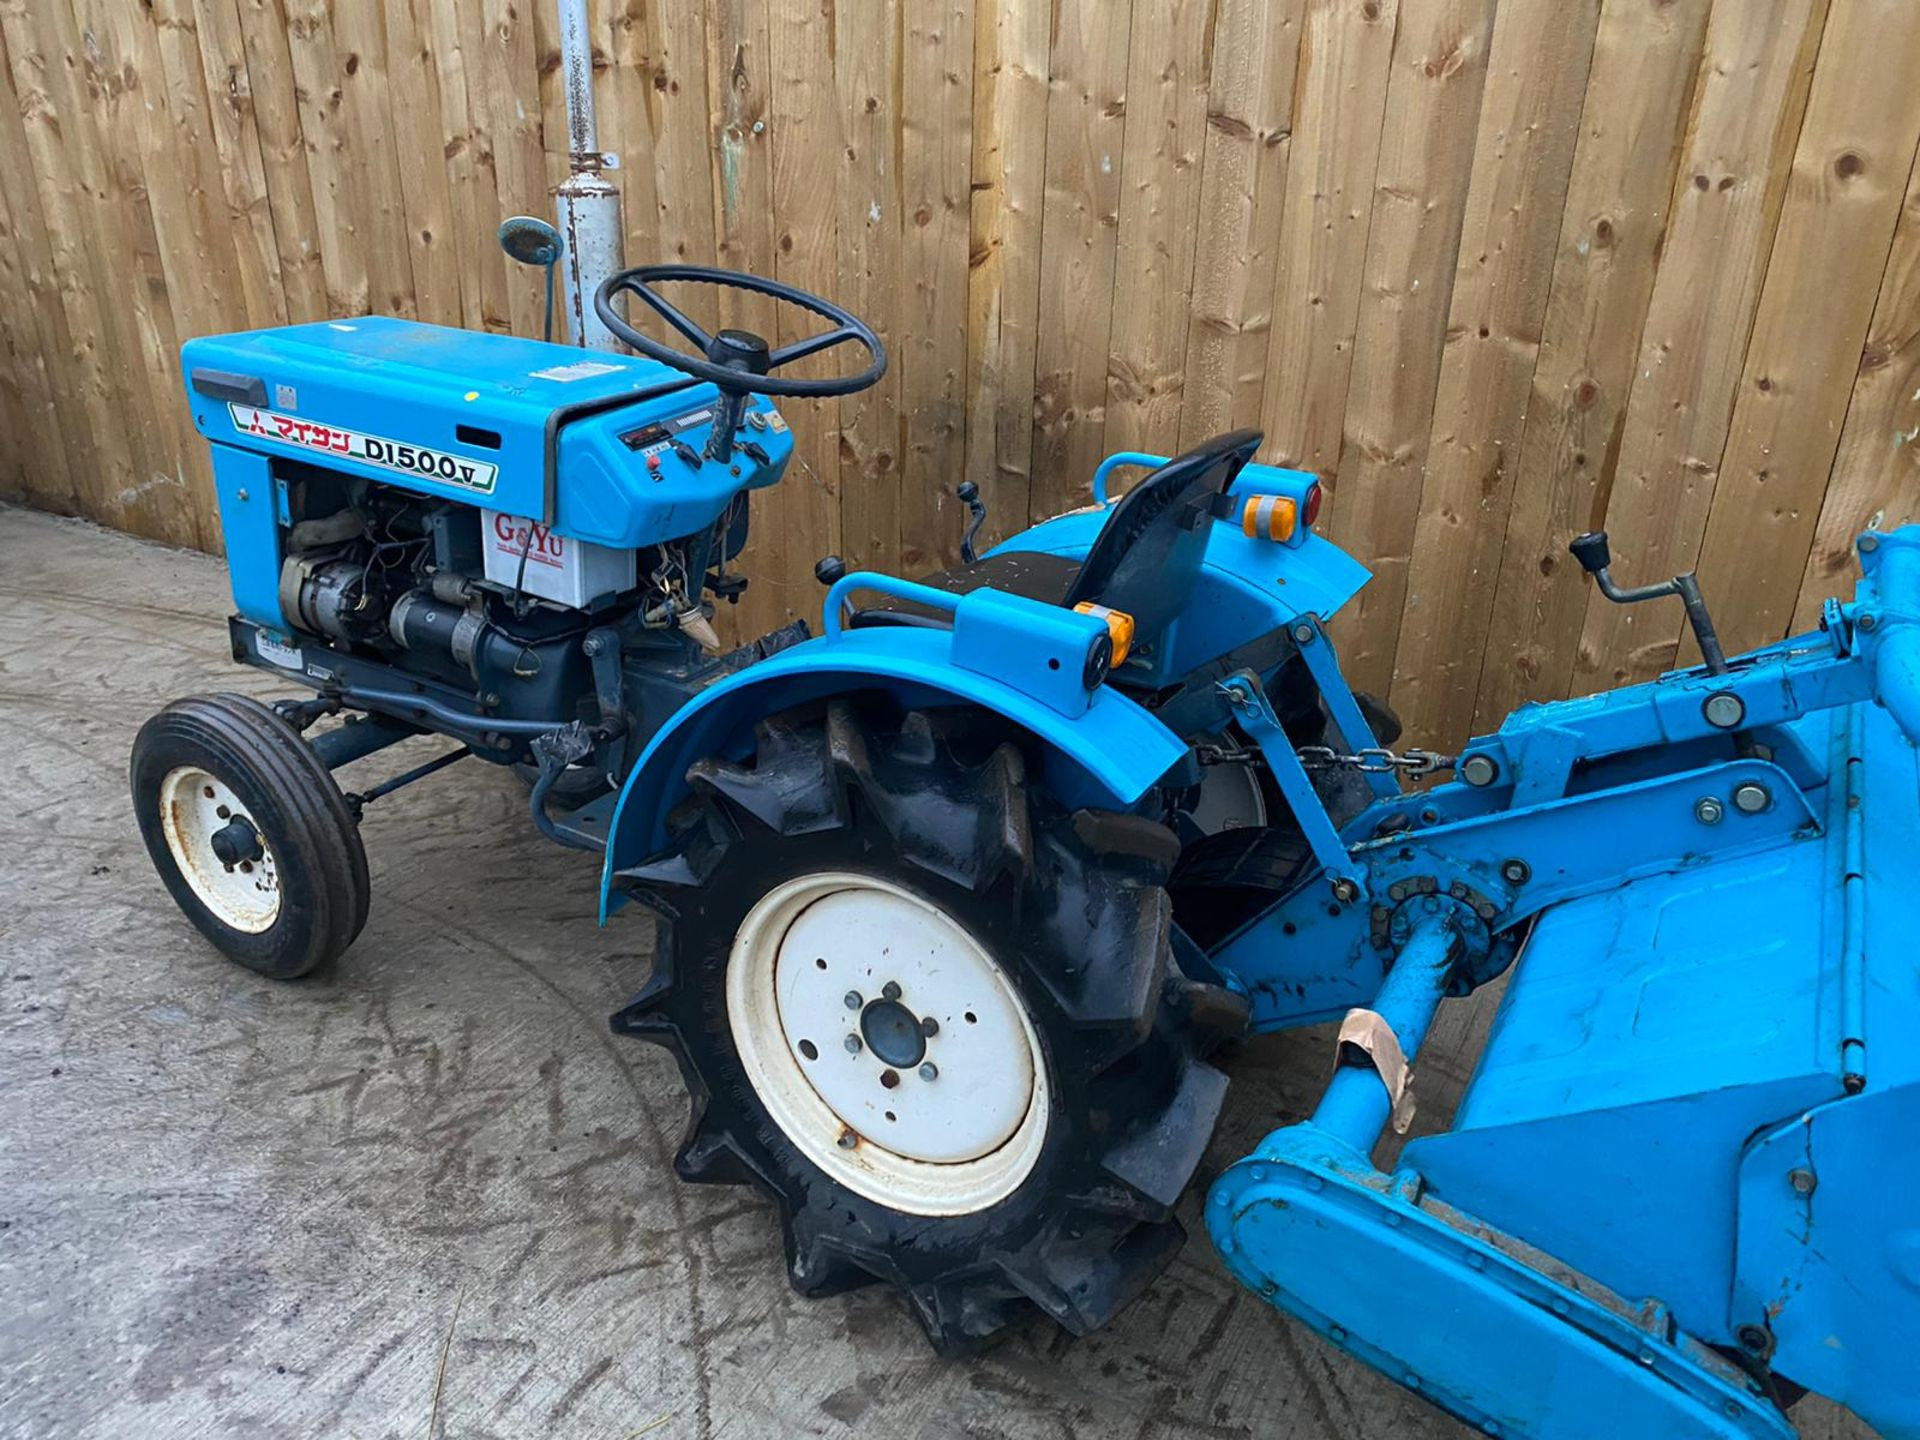 MITSUBISHI D1500V COMPACT TRACTOR & ROTOVATOR, STARTS, RUNS AND DRIVES & WORKS WELL *PLUS VAT* - Image 5 of 5